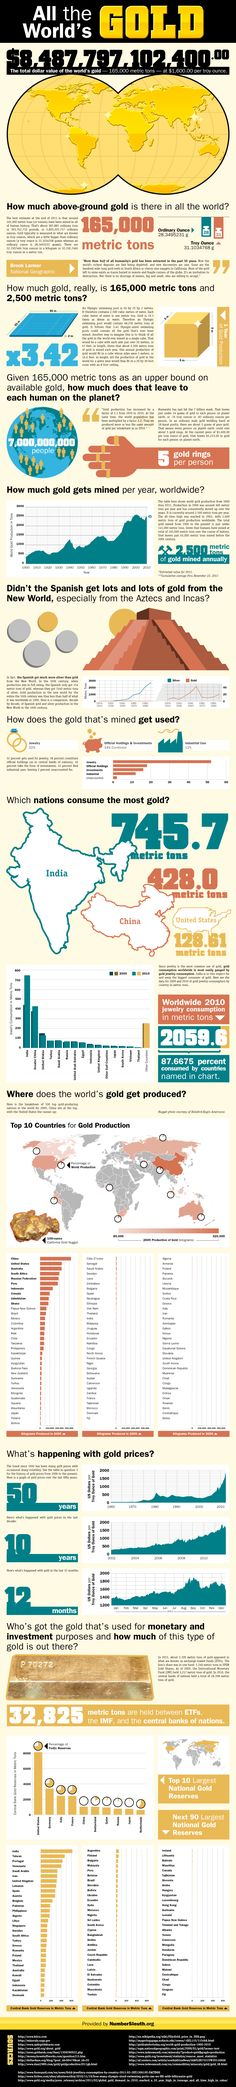 All the World's Gold